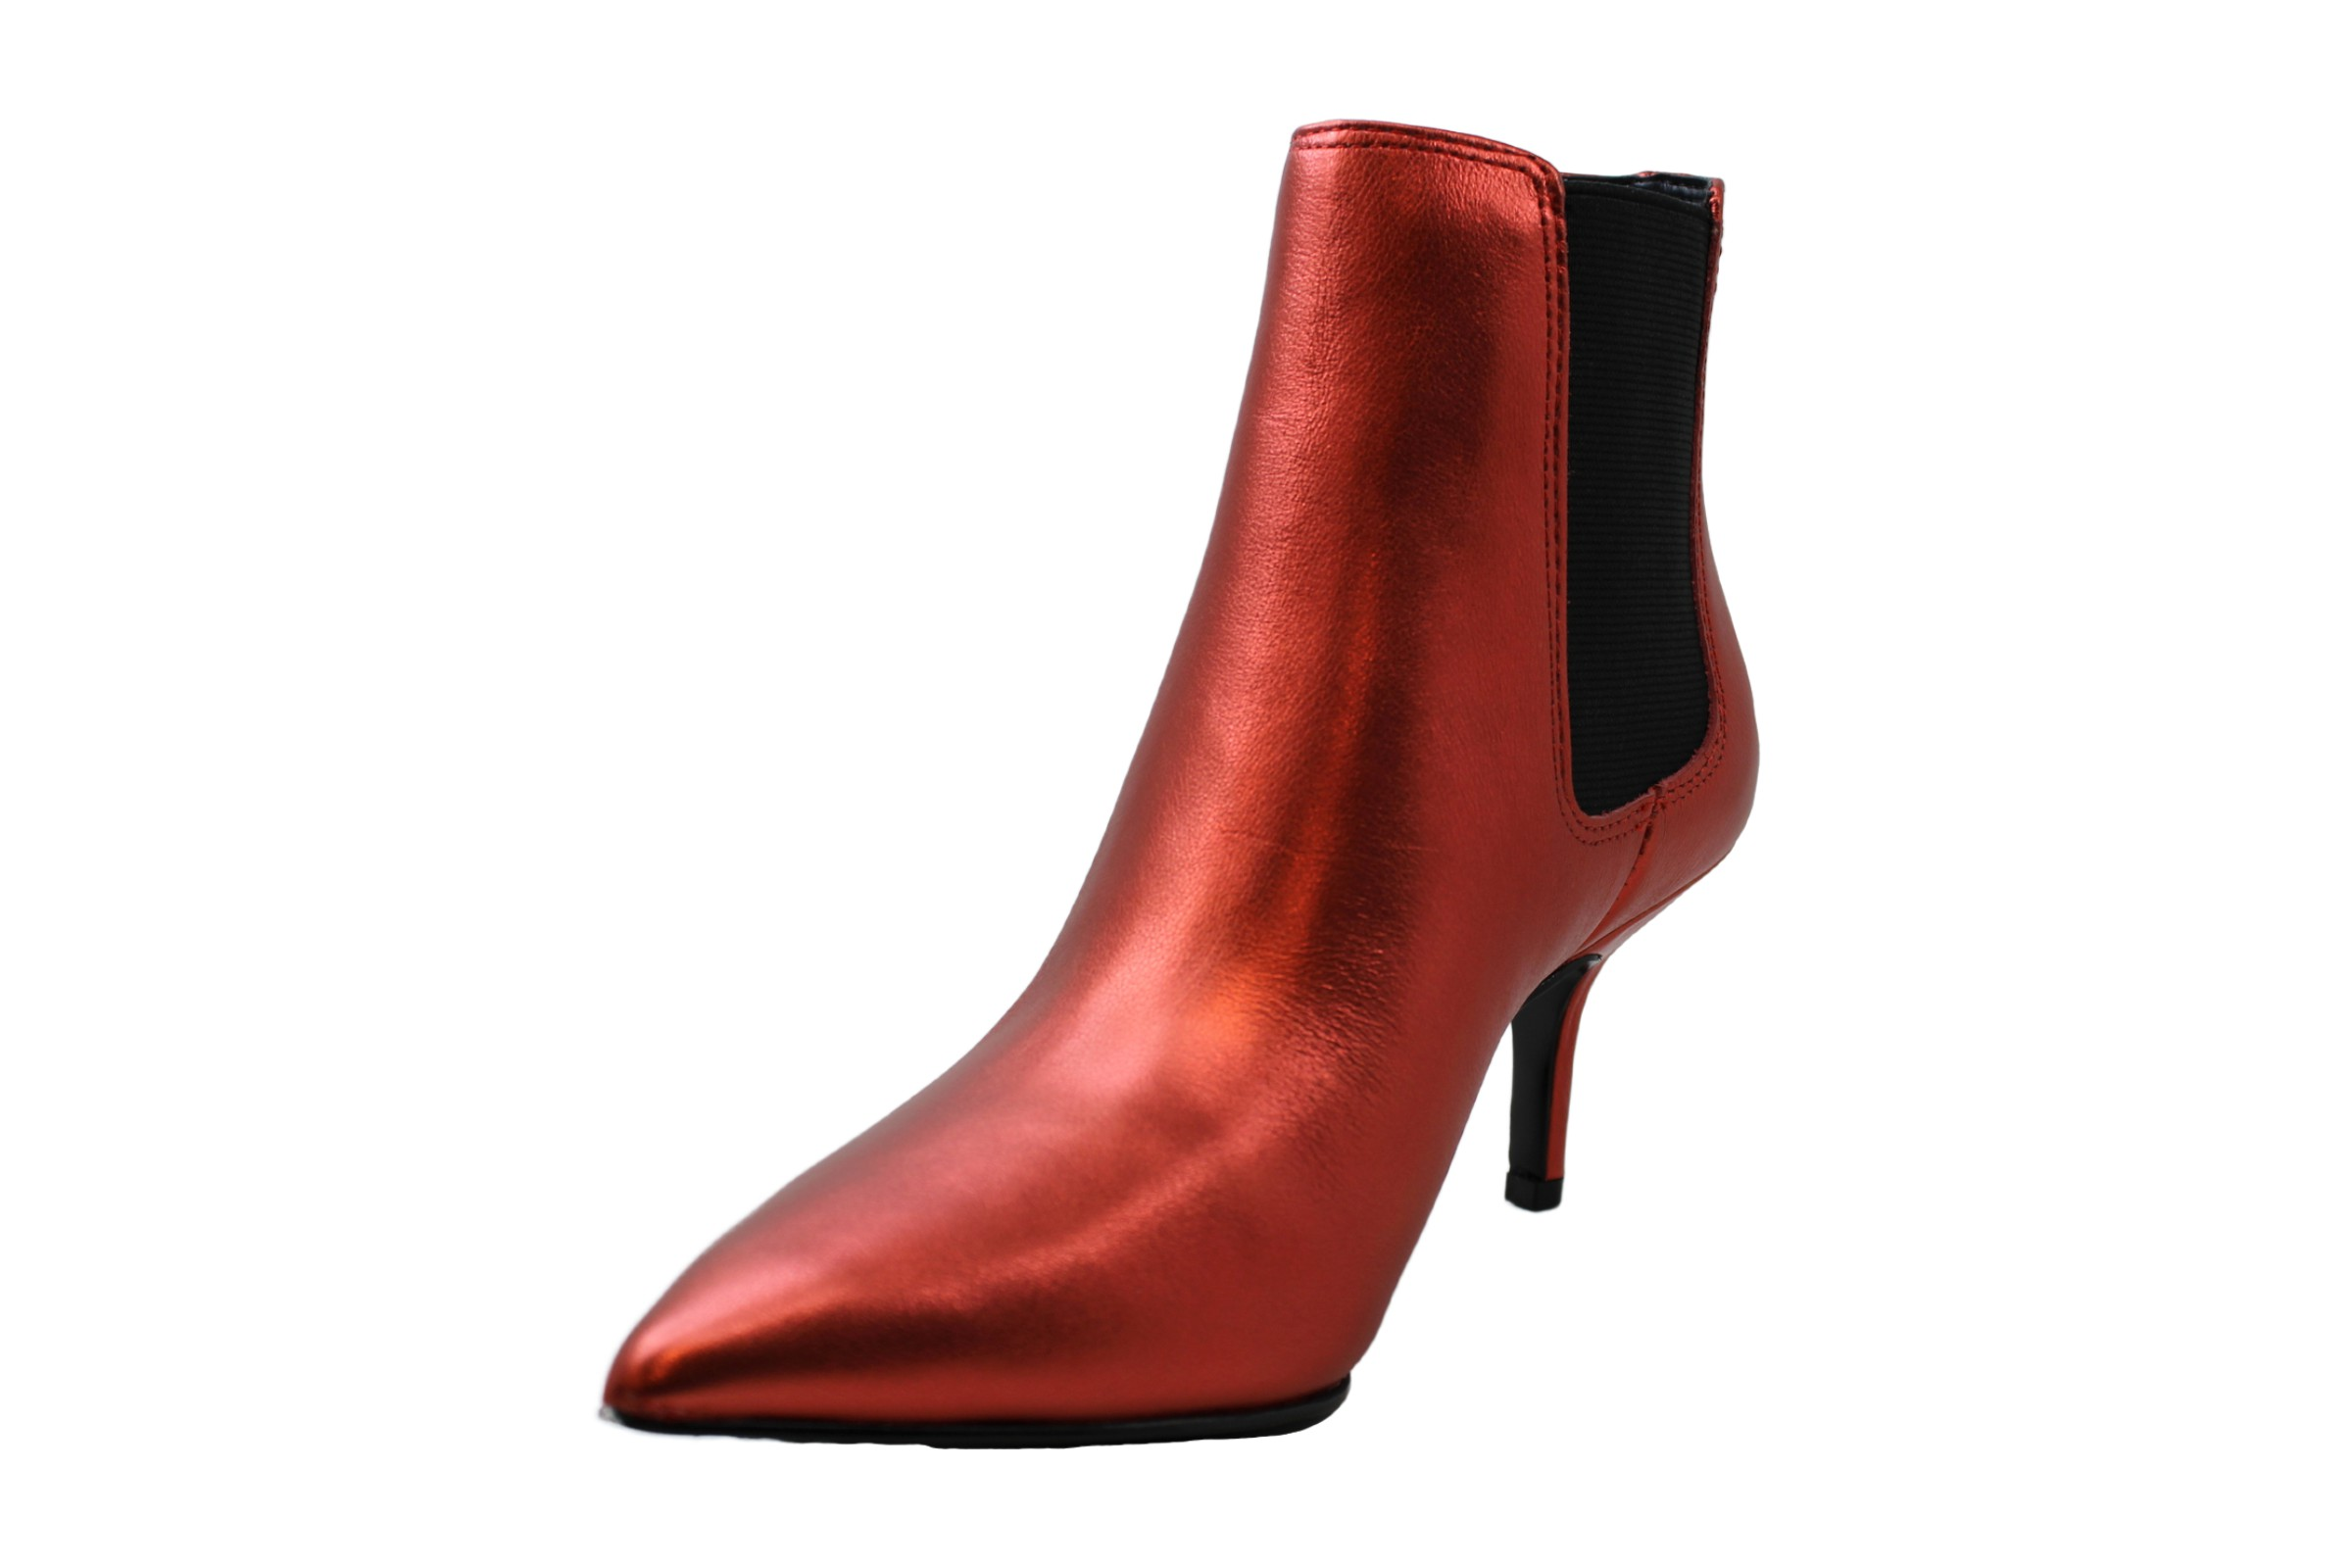 Vince-Camuto-Womens-Arlo-01-Leather-Pointed-Toe-Ankle-Chelsea-Boots thumbnail 4